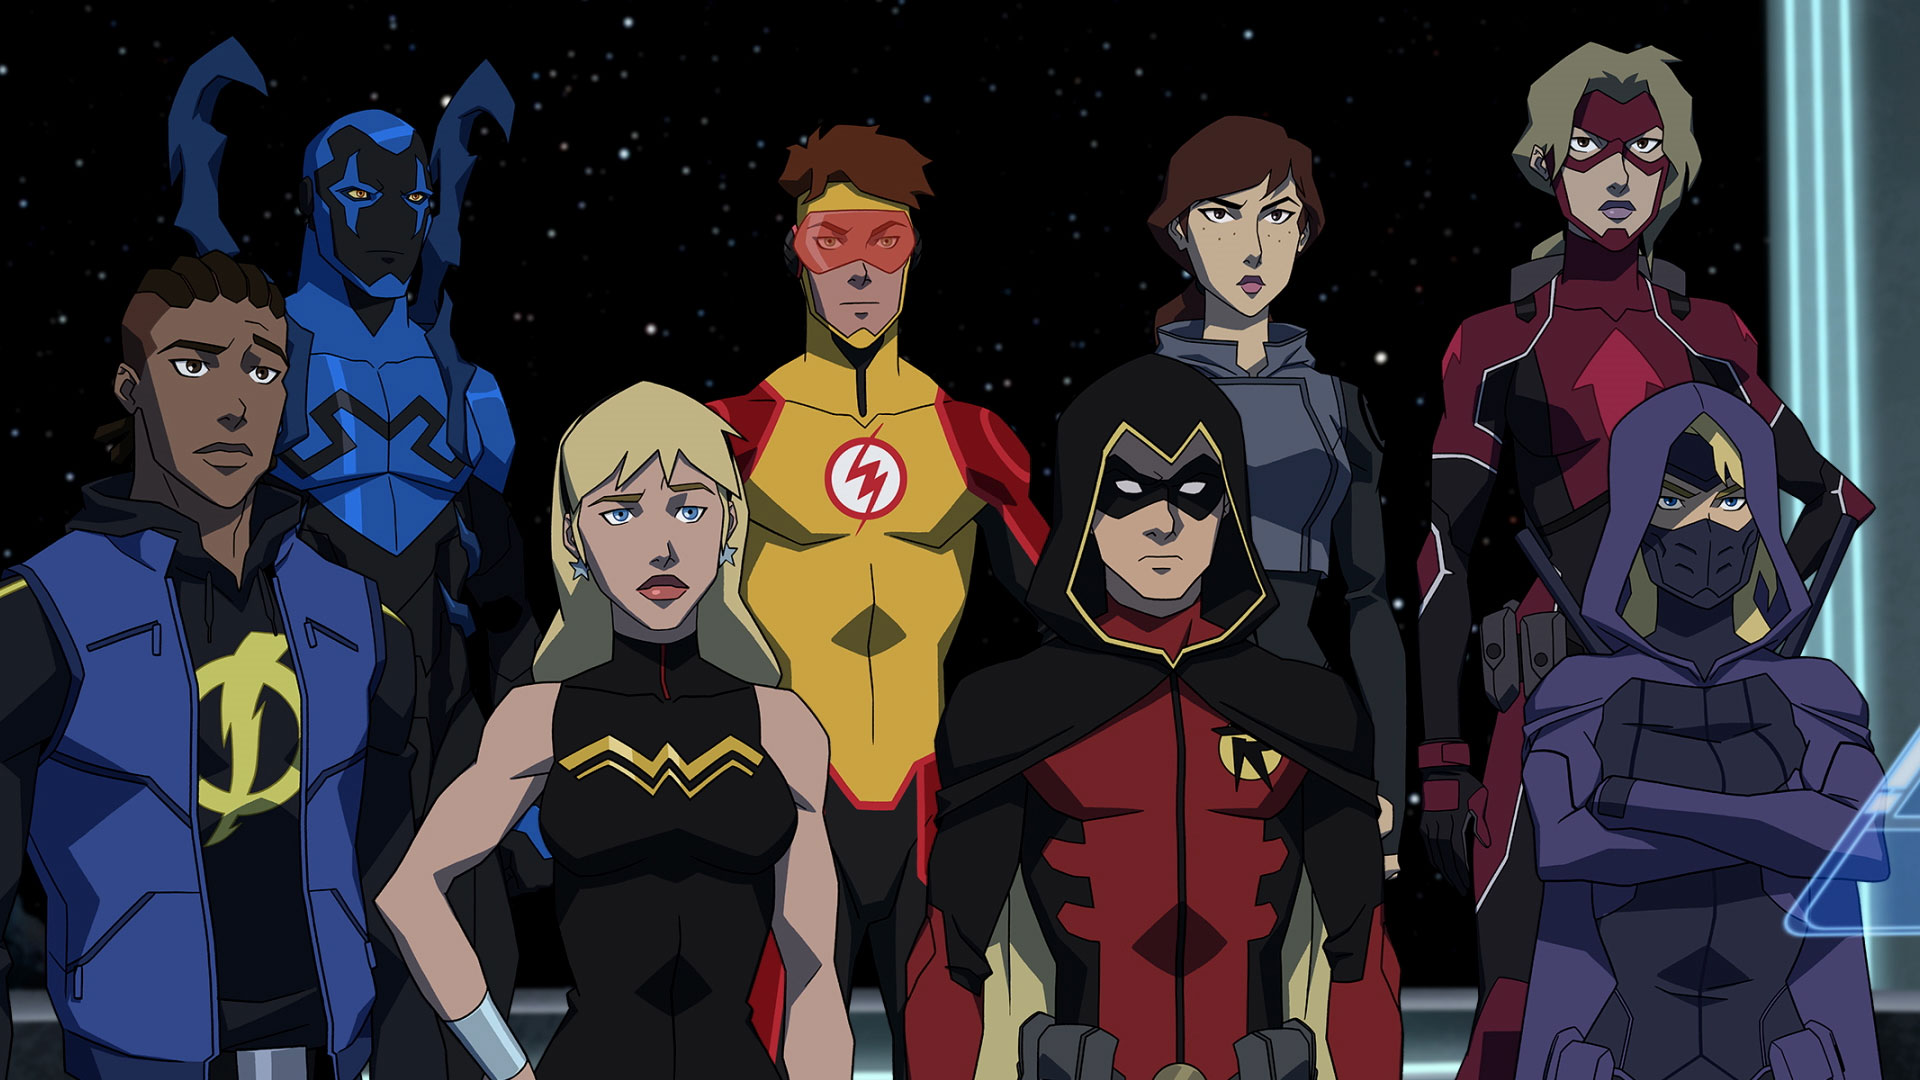 Young Justice (2010 - Present) | DC